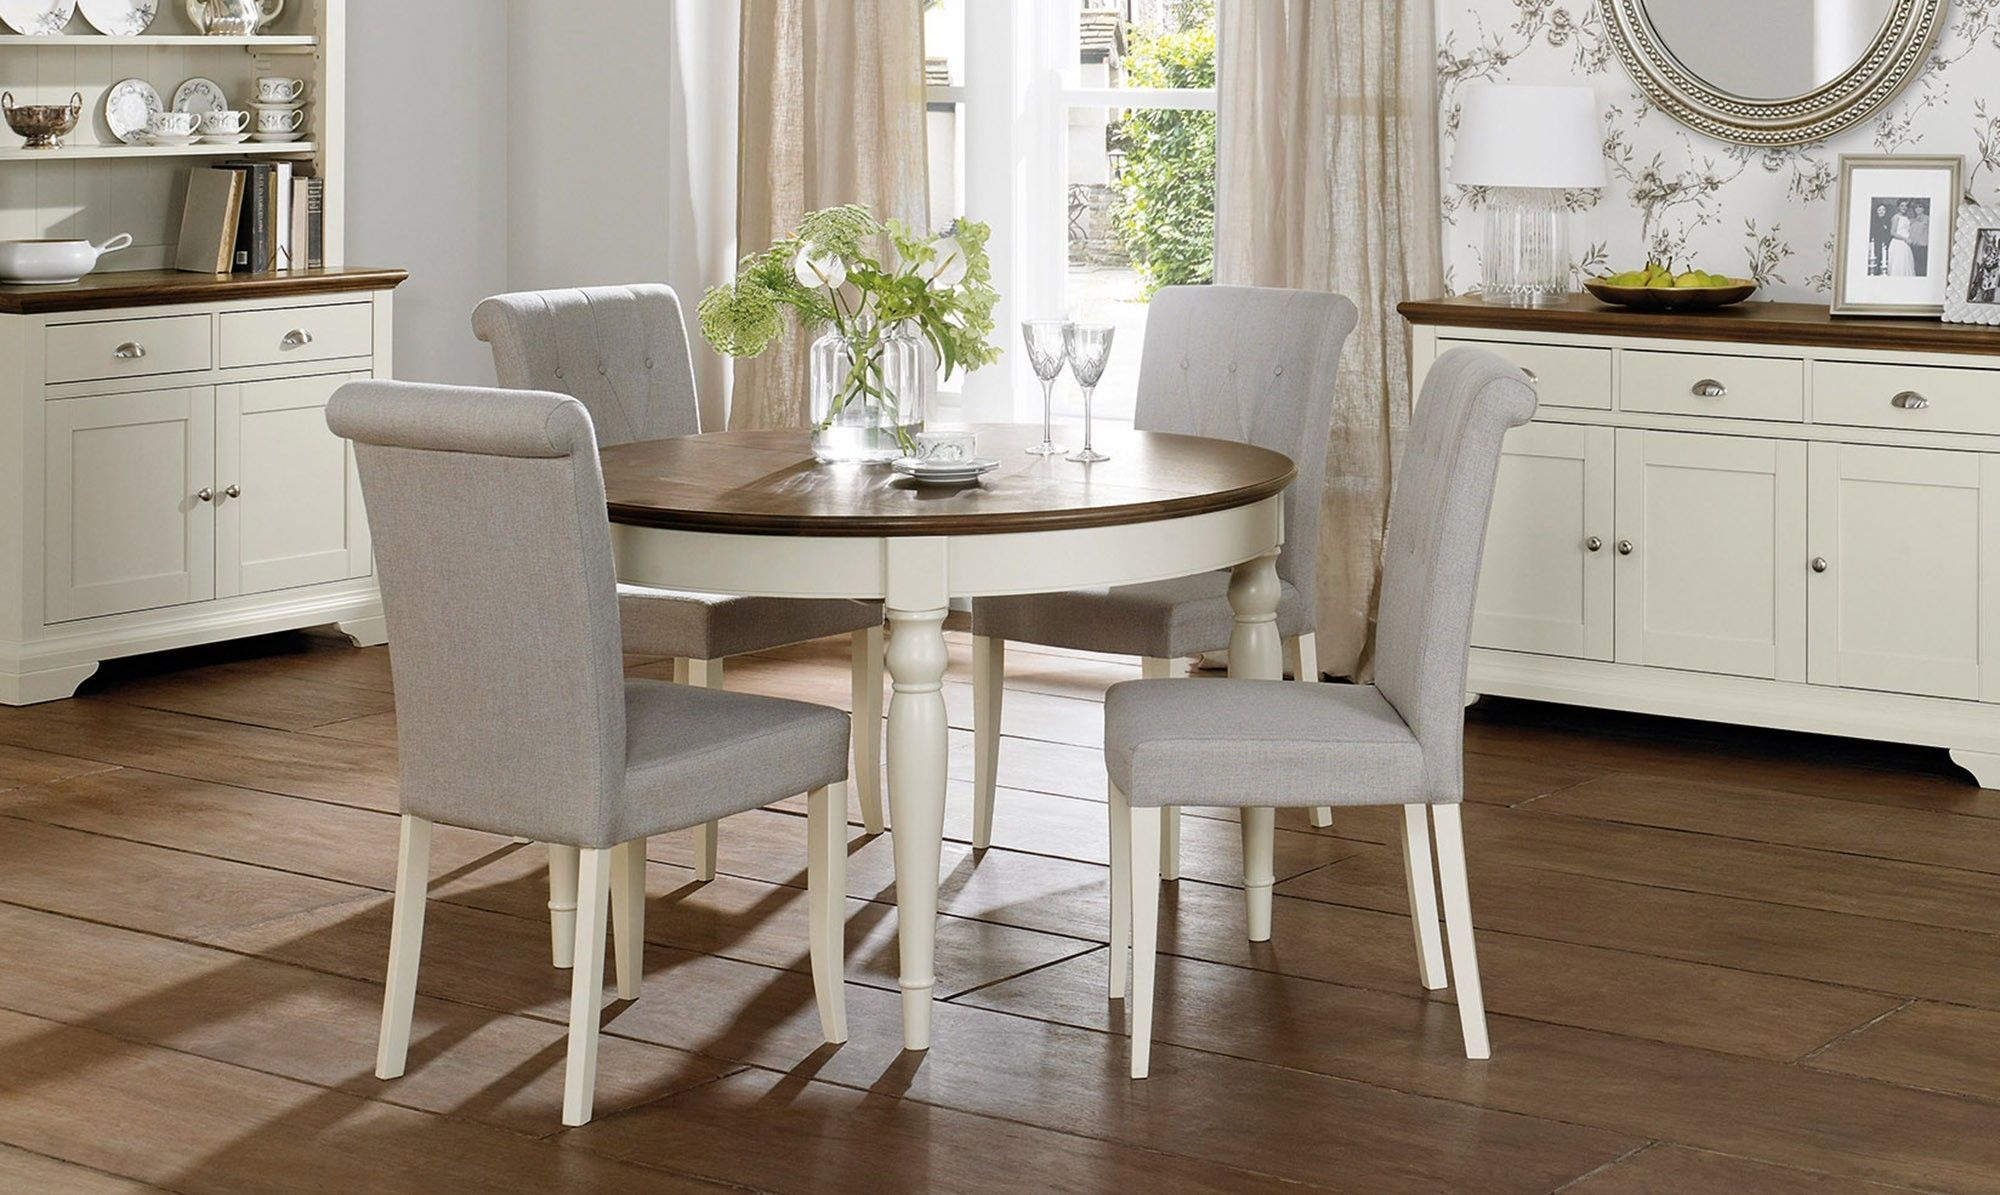 Extending Dining Table Sets Next | Dining table in kitchen ...